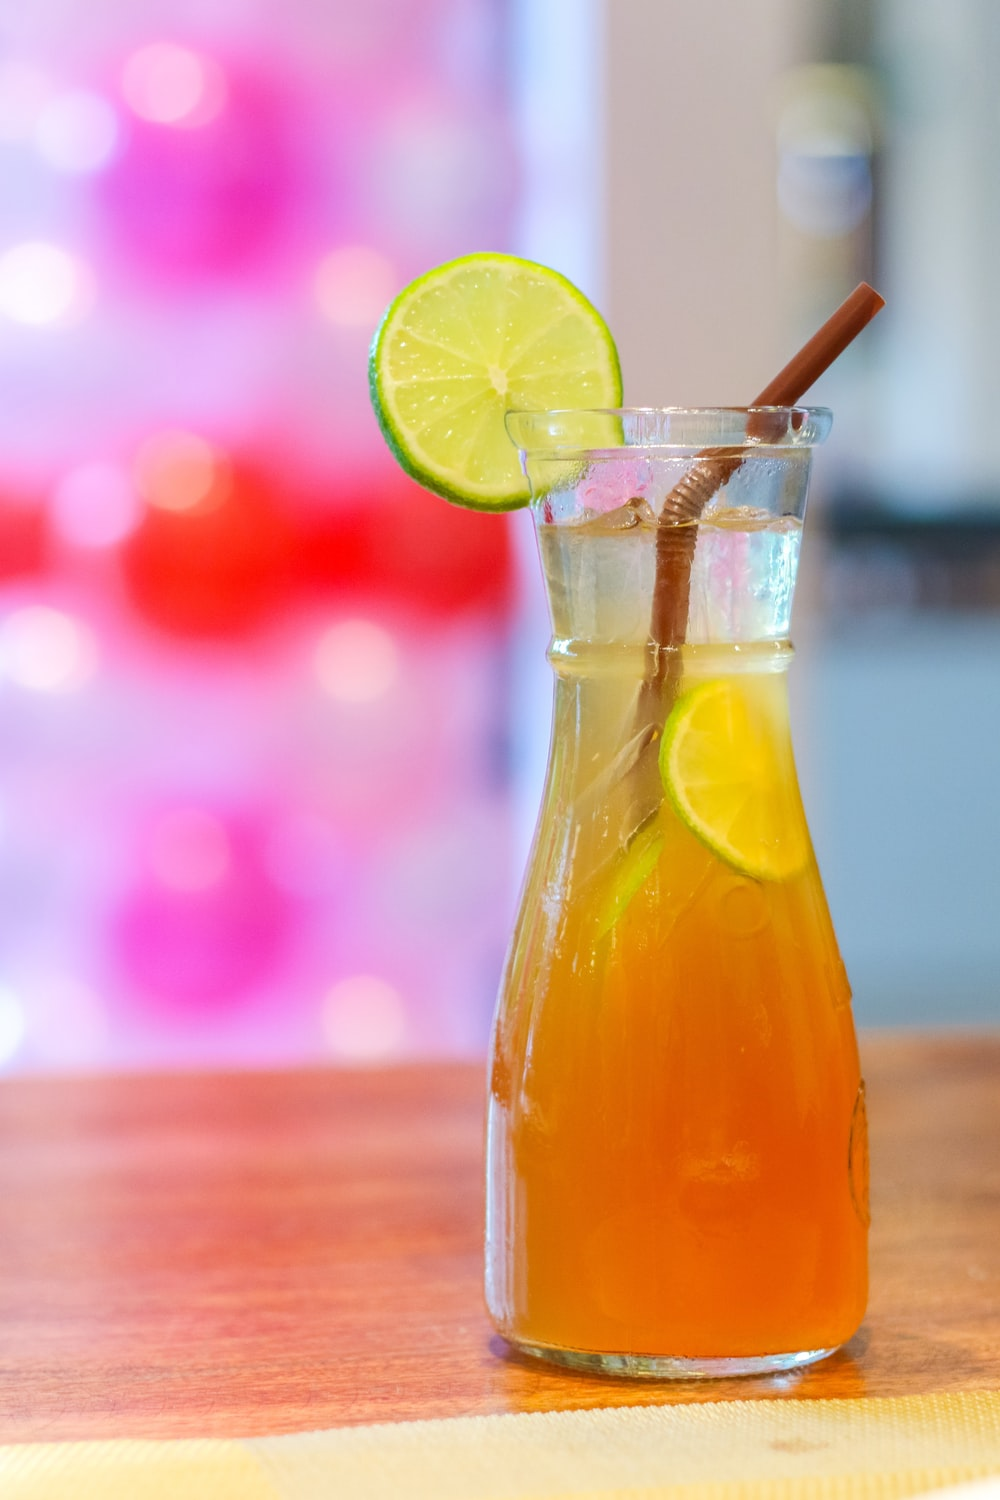 clear glass bottle with yellow liquid and sliced lemon